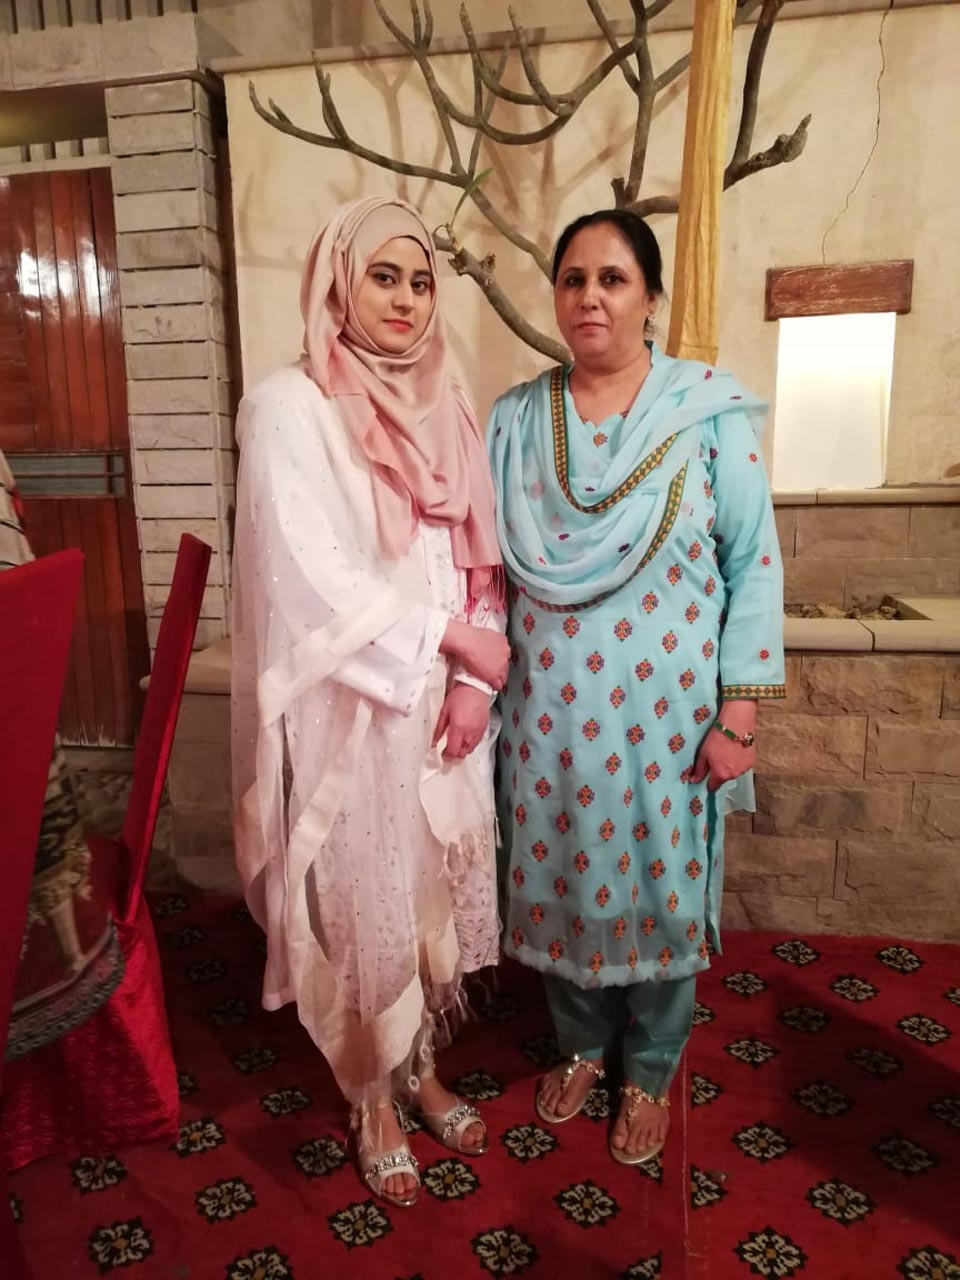 Ghazala Khanam and Sadia Fatima , Engr. Iqbal Khan's guests came from Aligarh UP India